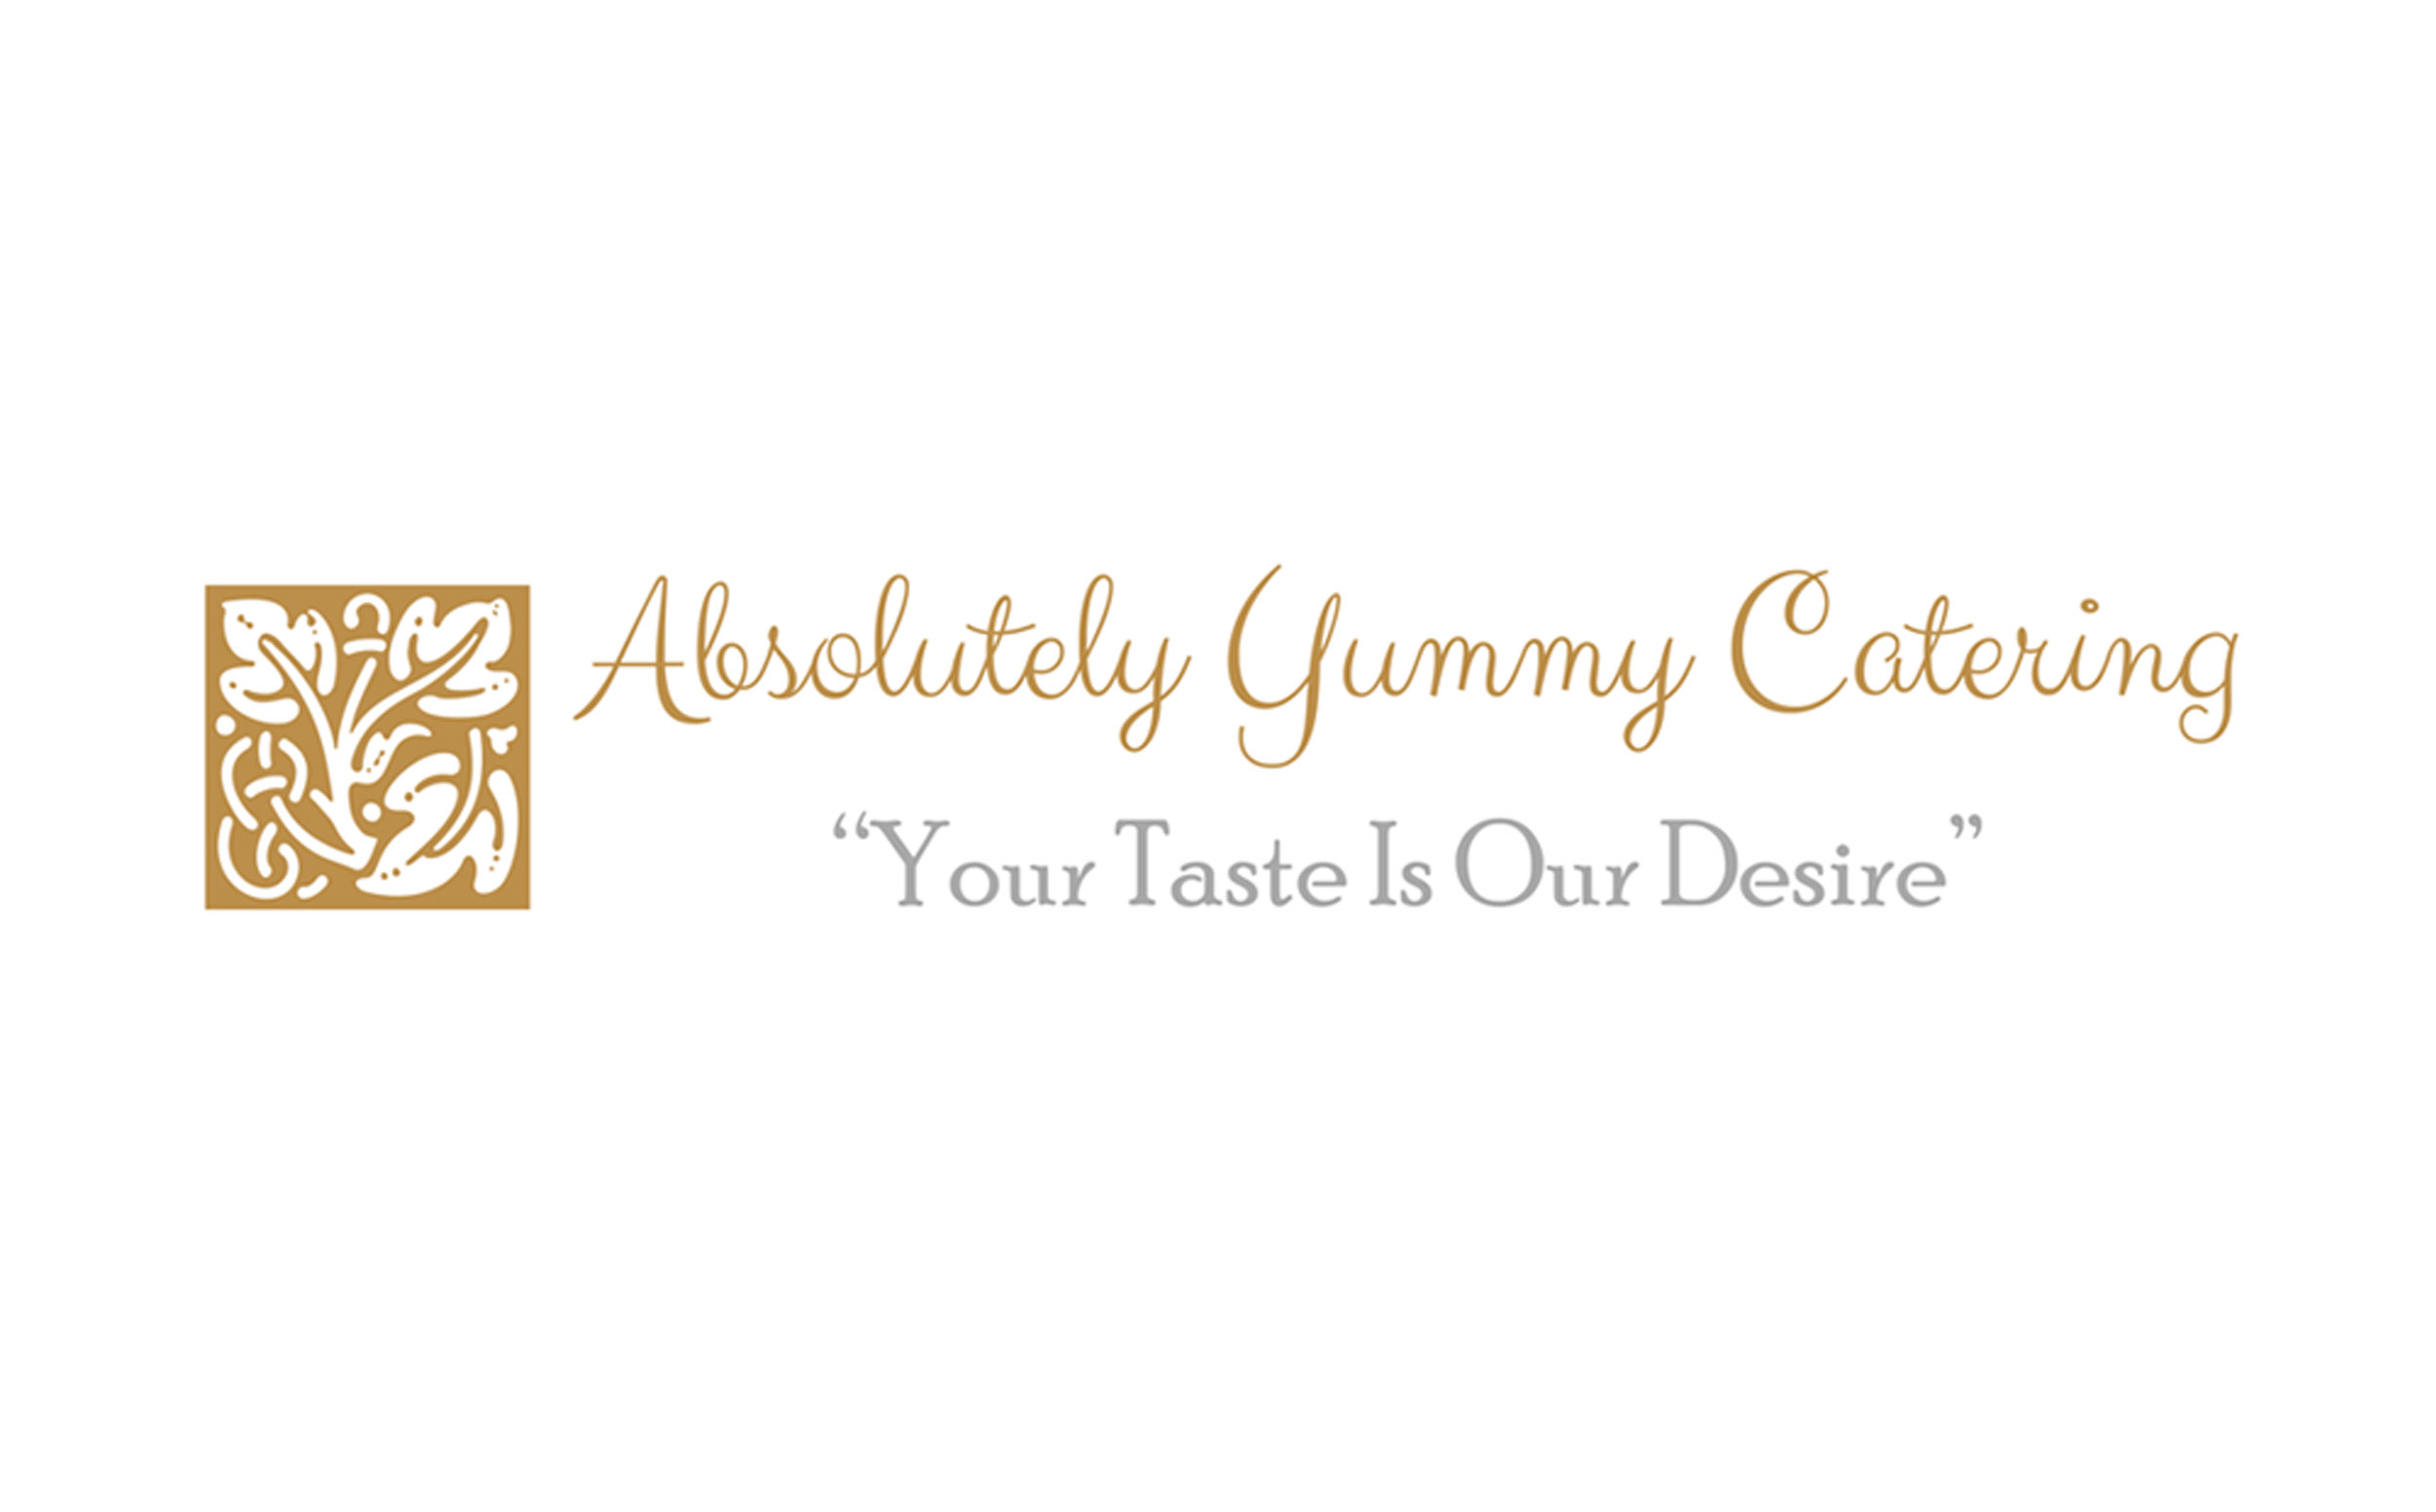 Absolutely Yummy Catering